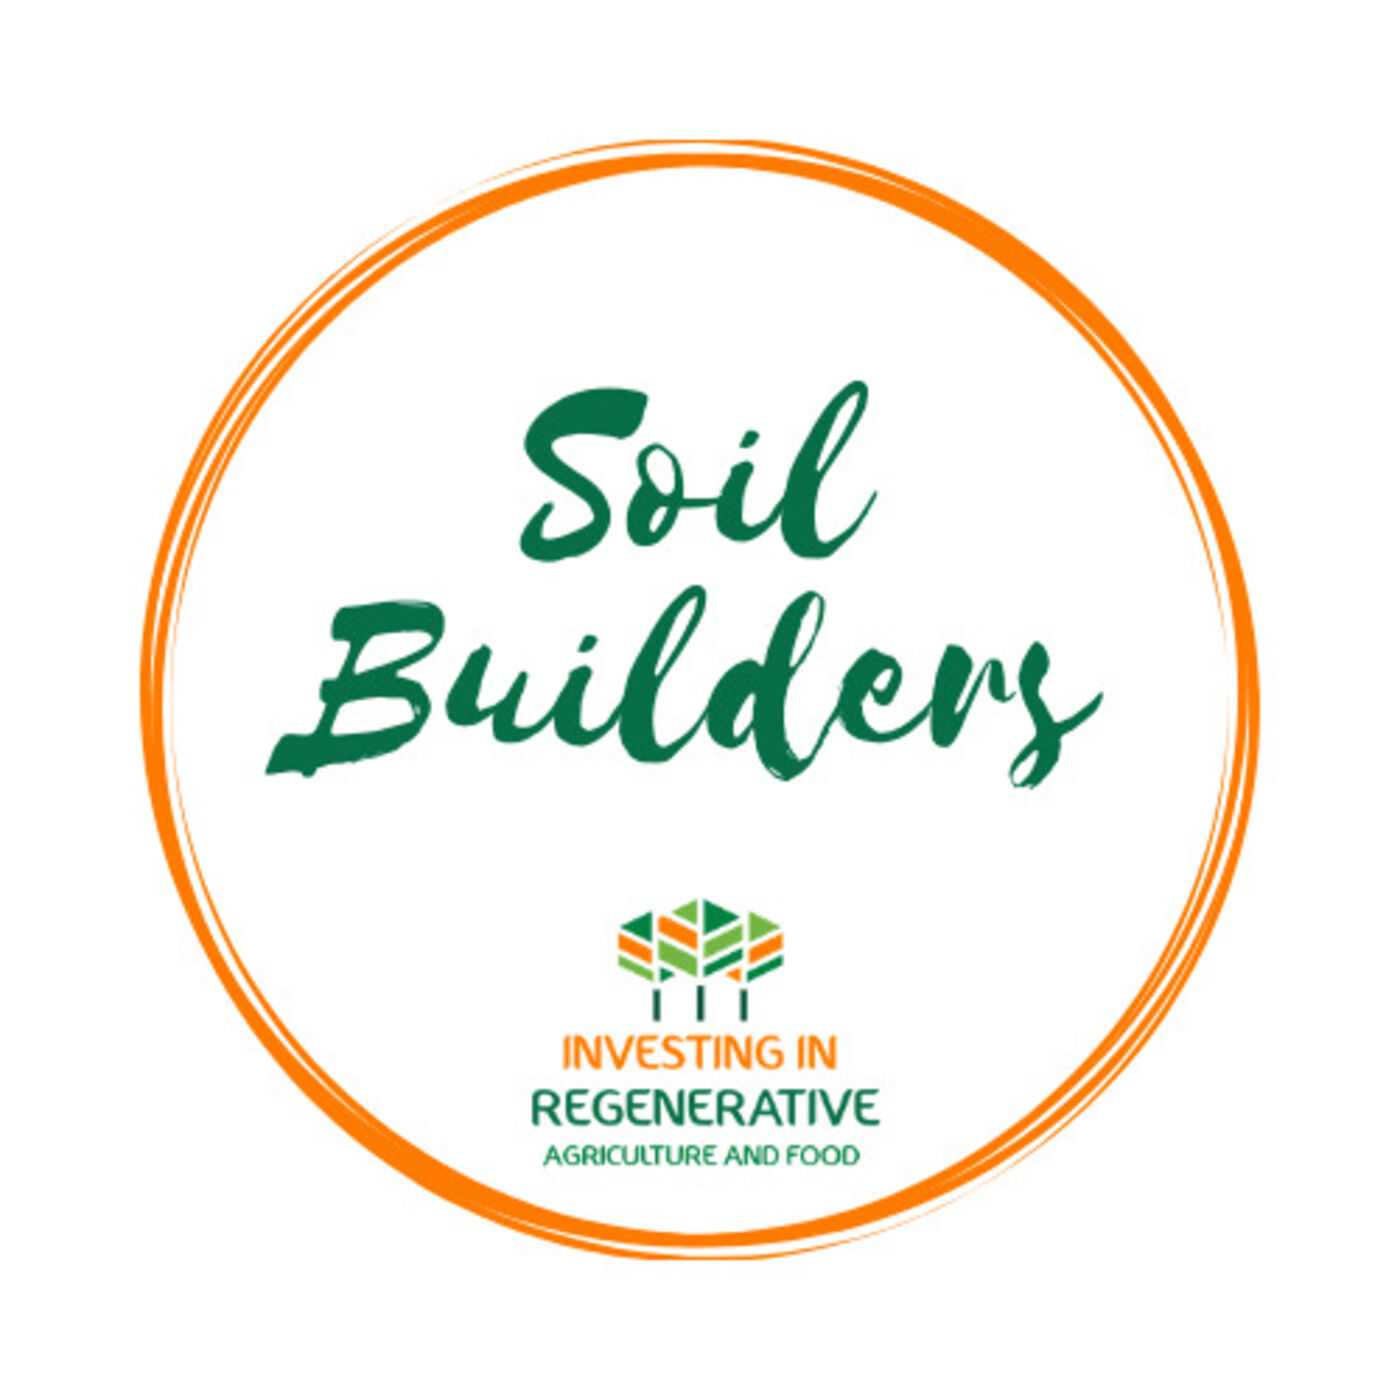 Soil Builders, for robots not all weeds are created egual